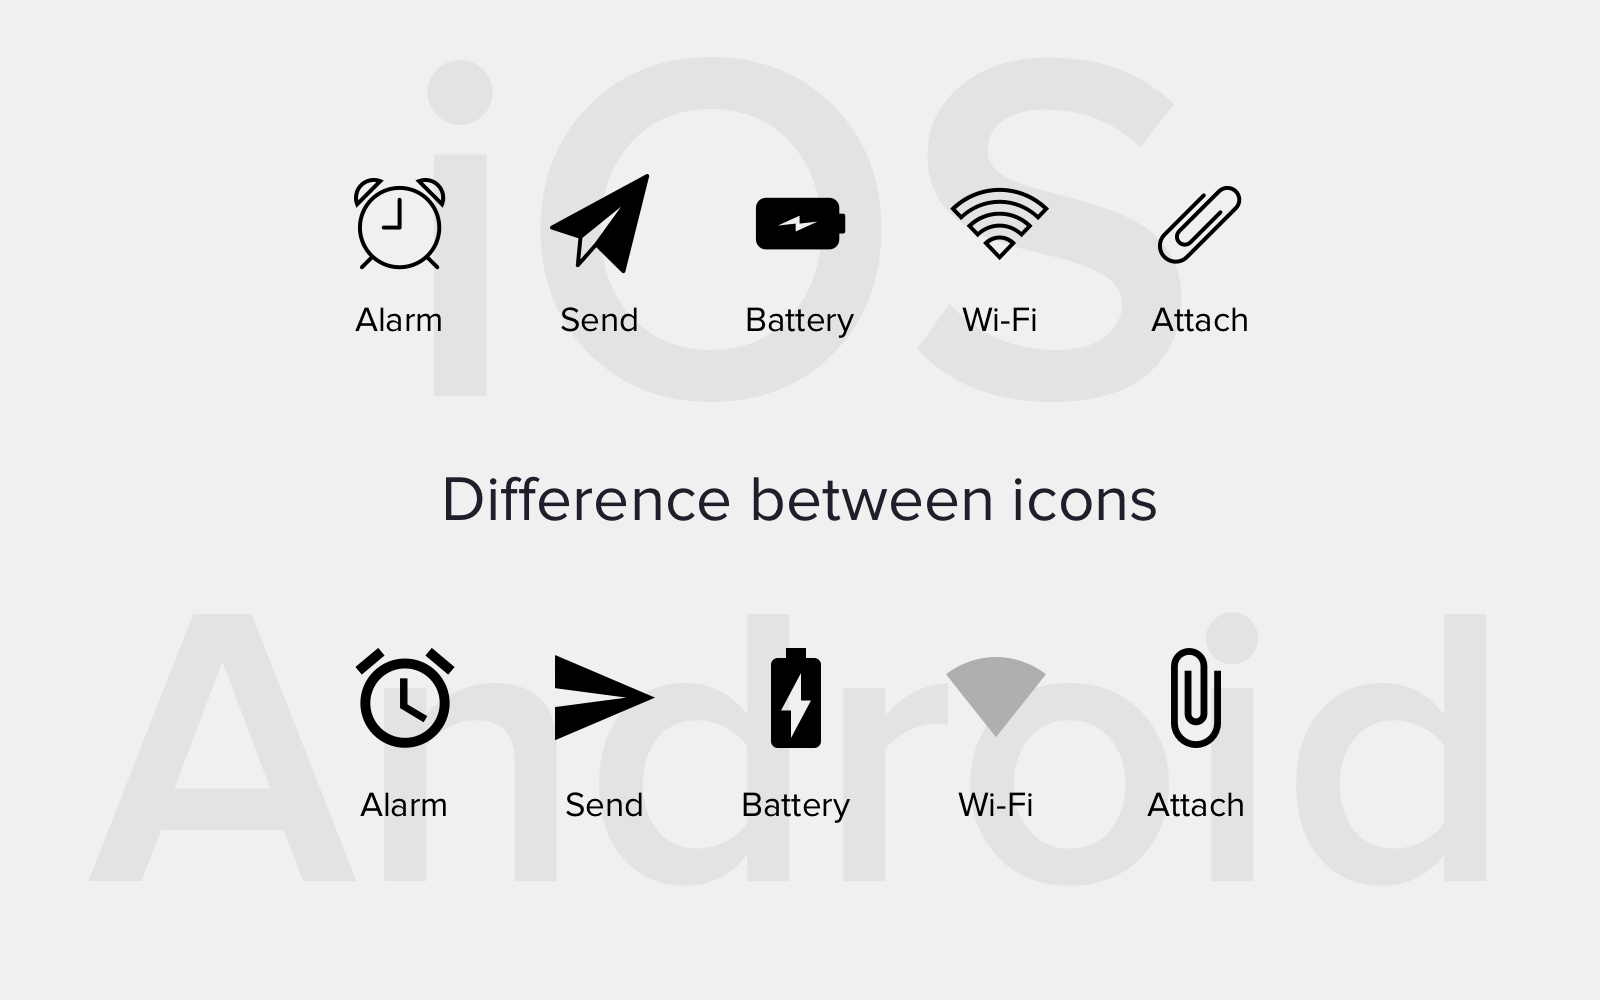 Difference between iOS and Android icons